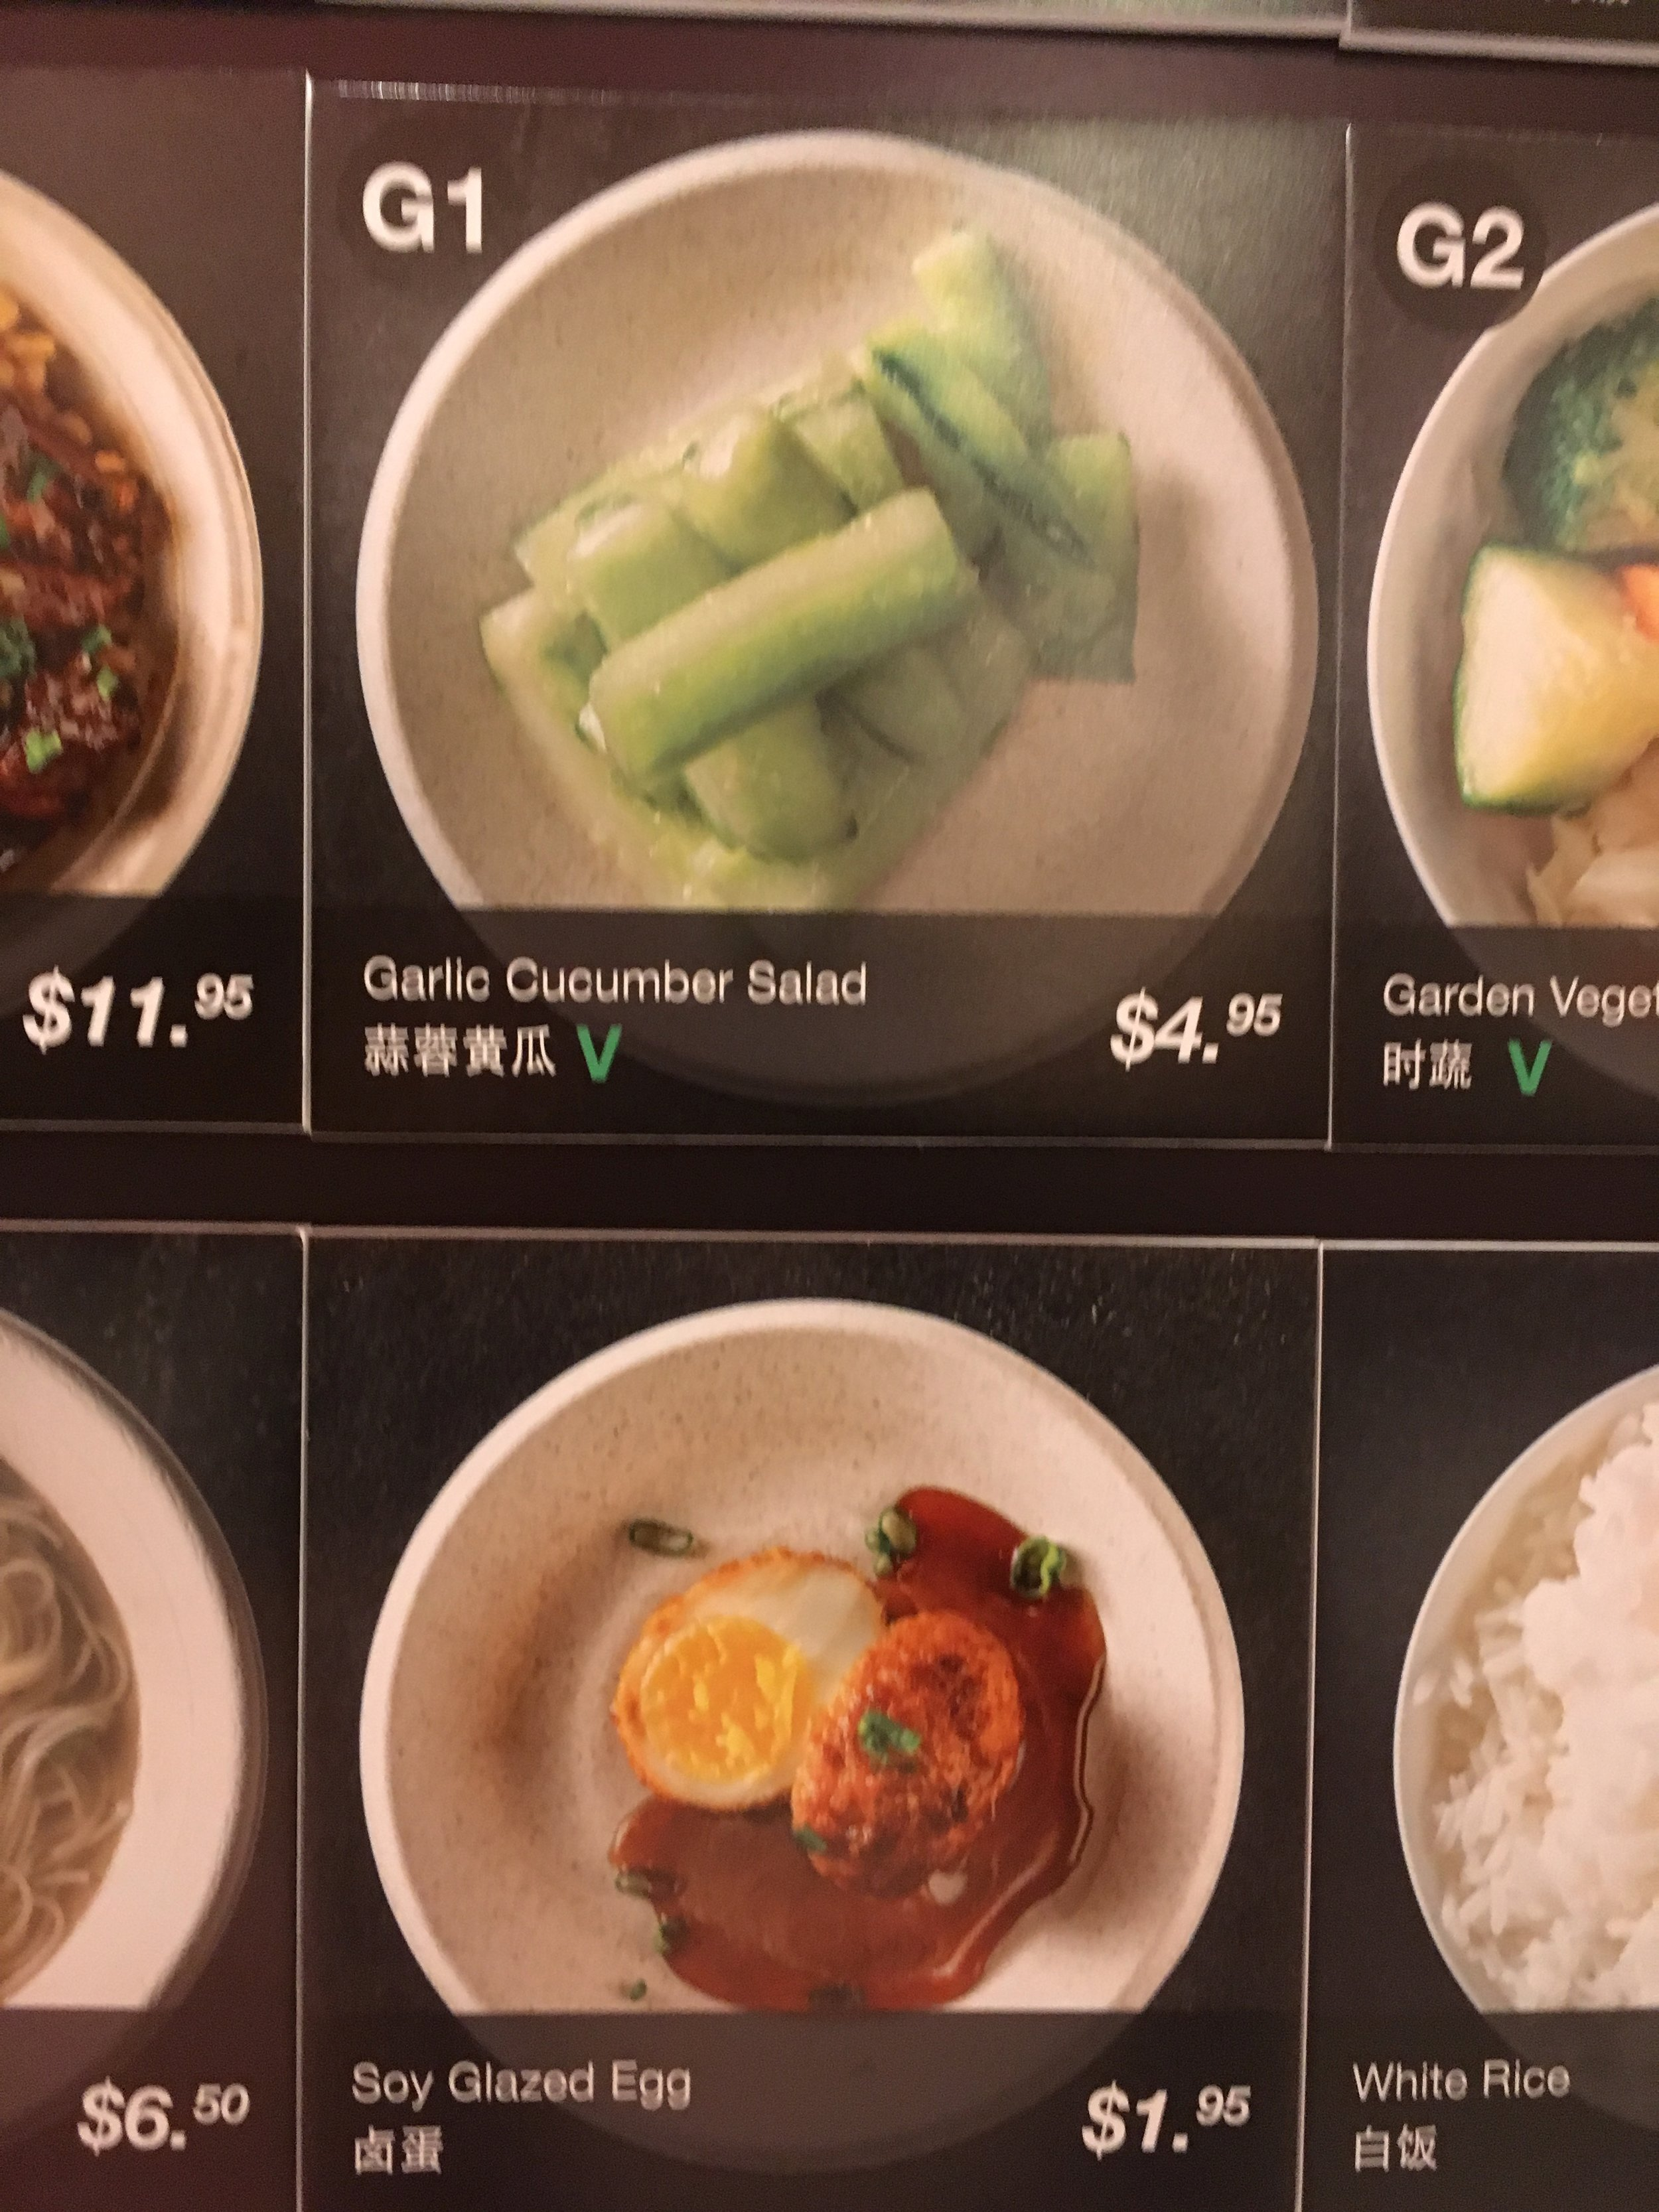 Low-priced snack offerings